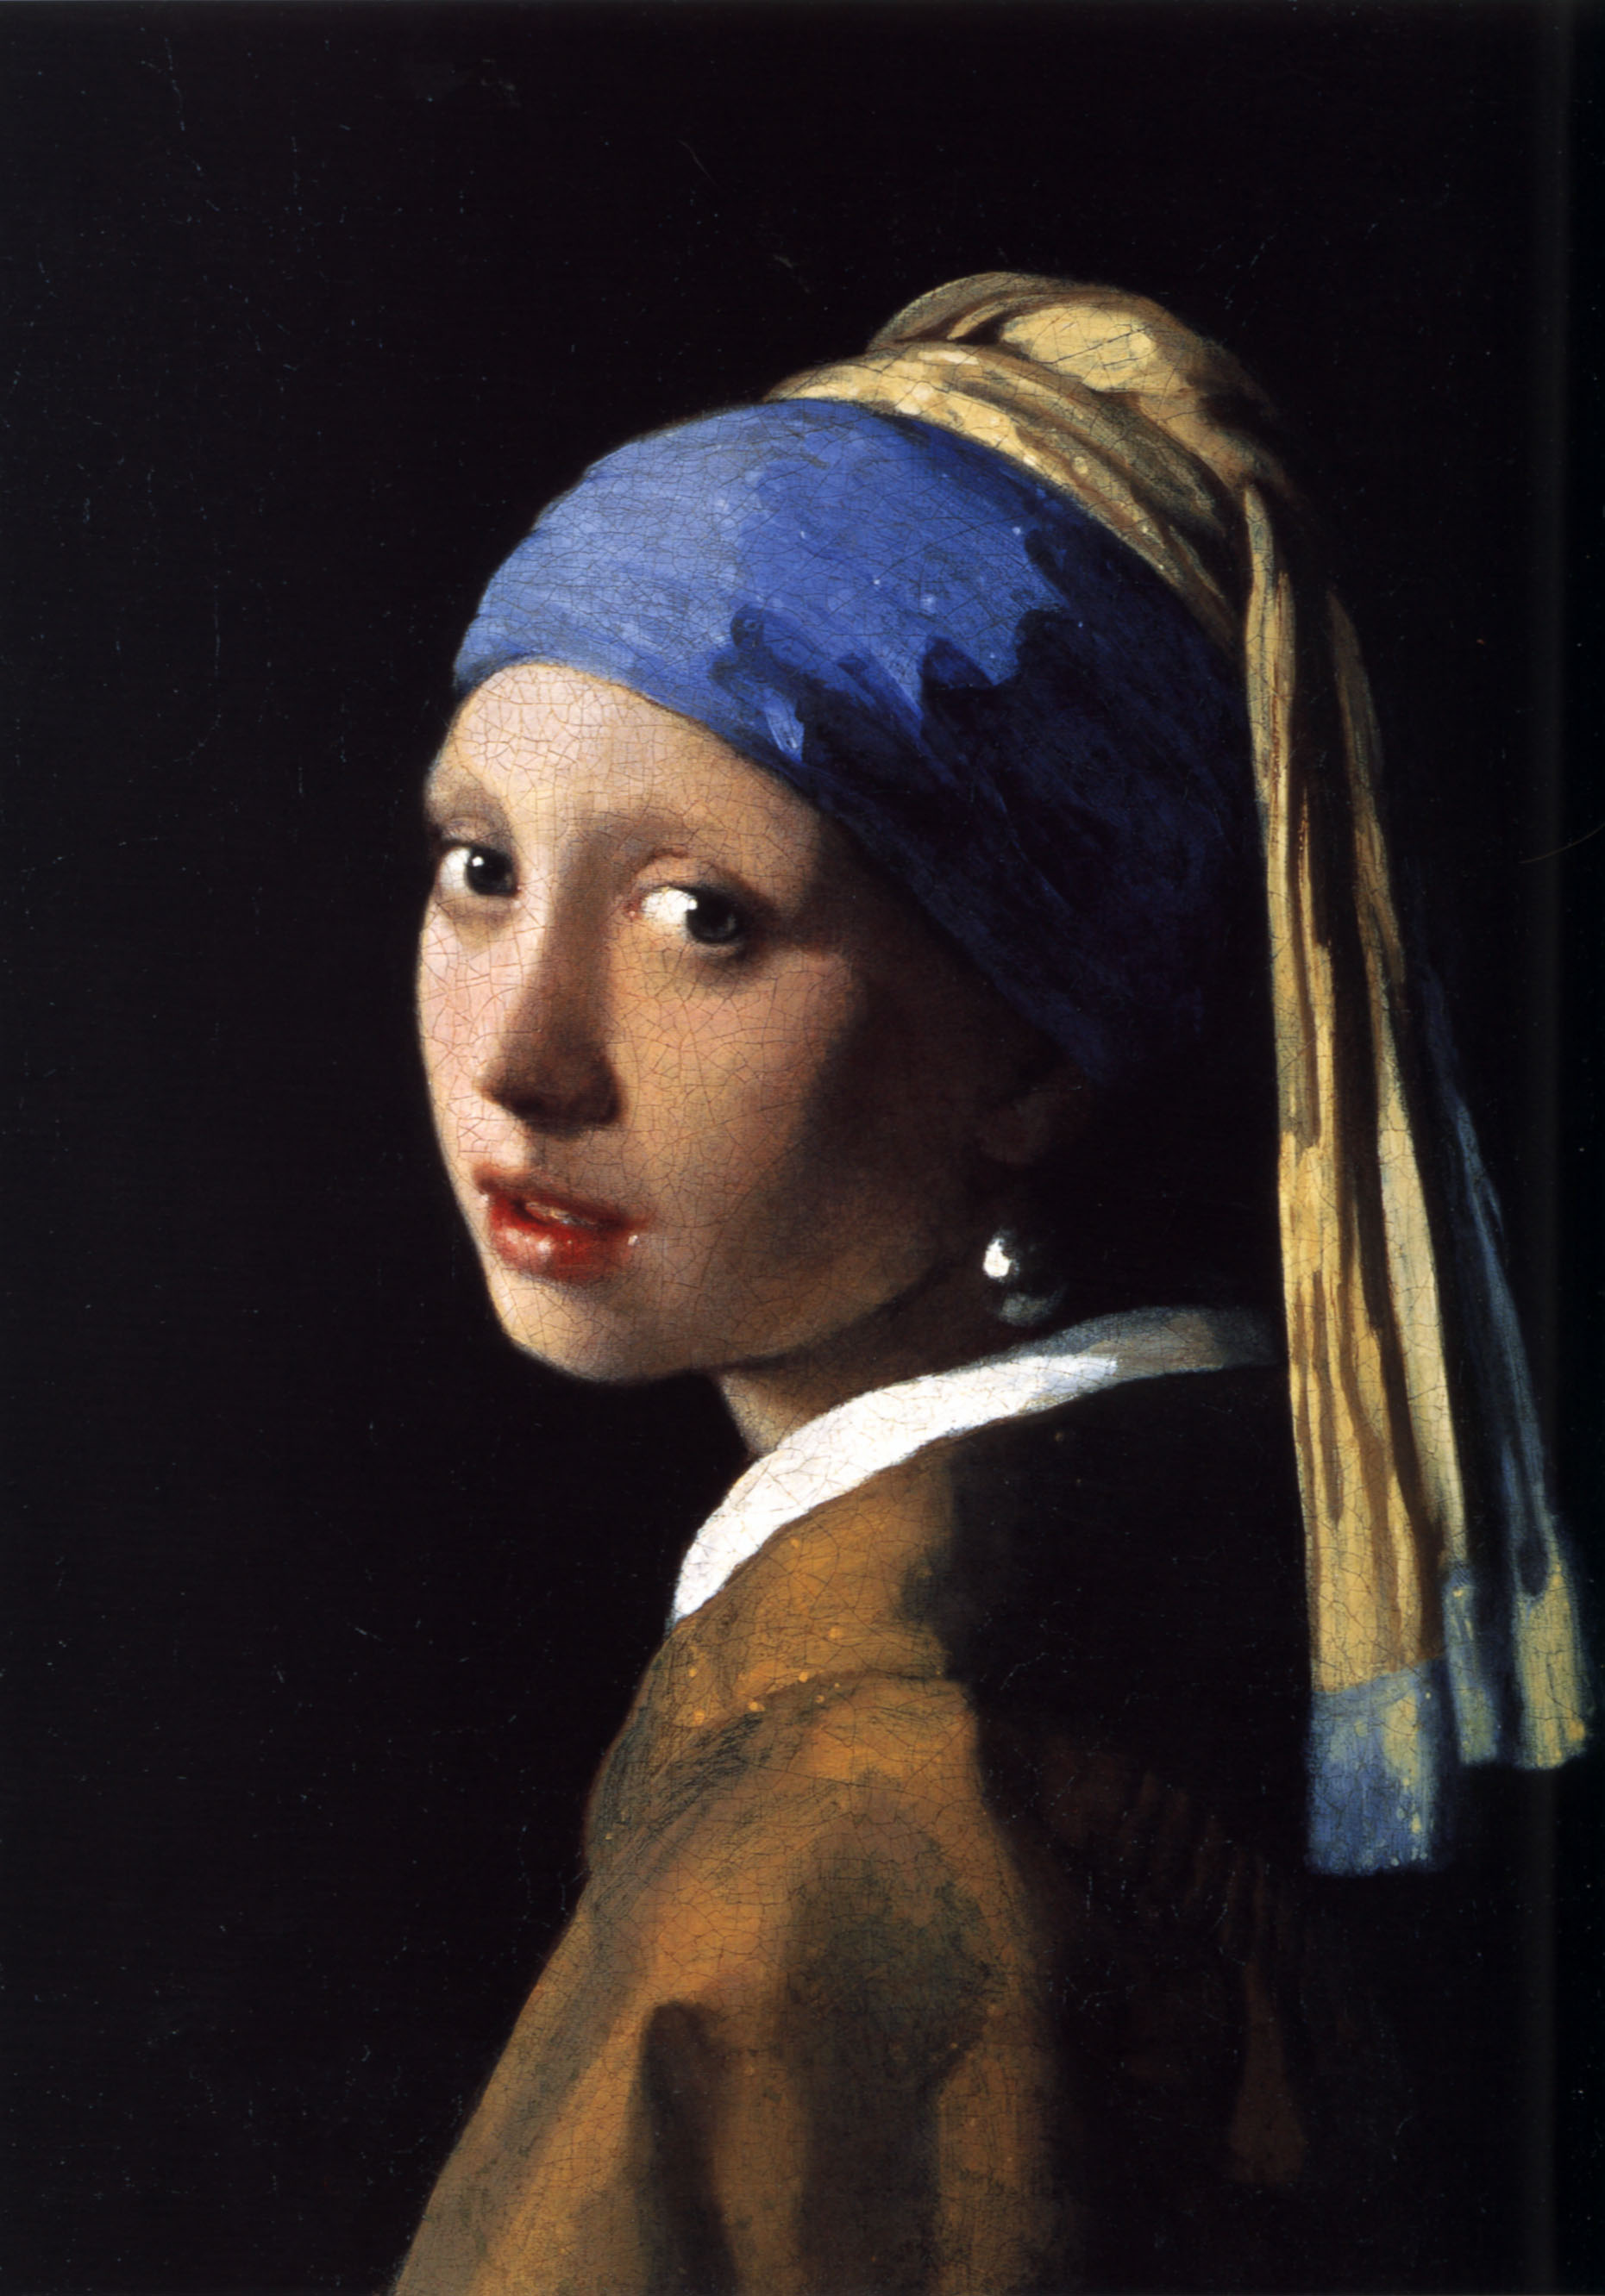 https://upload.wikimedia.org/wikipedia/commons/6/66/Johannes_Vermeer_(1632-1675)_-_The_Girl_With_The_Pearl_Earring_(1665).jpg